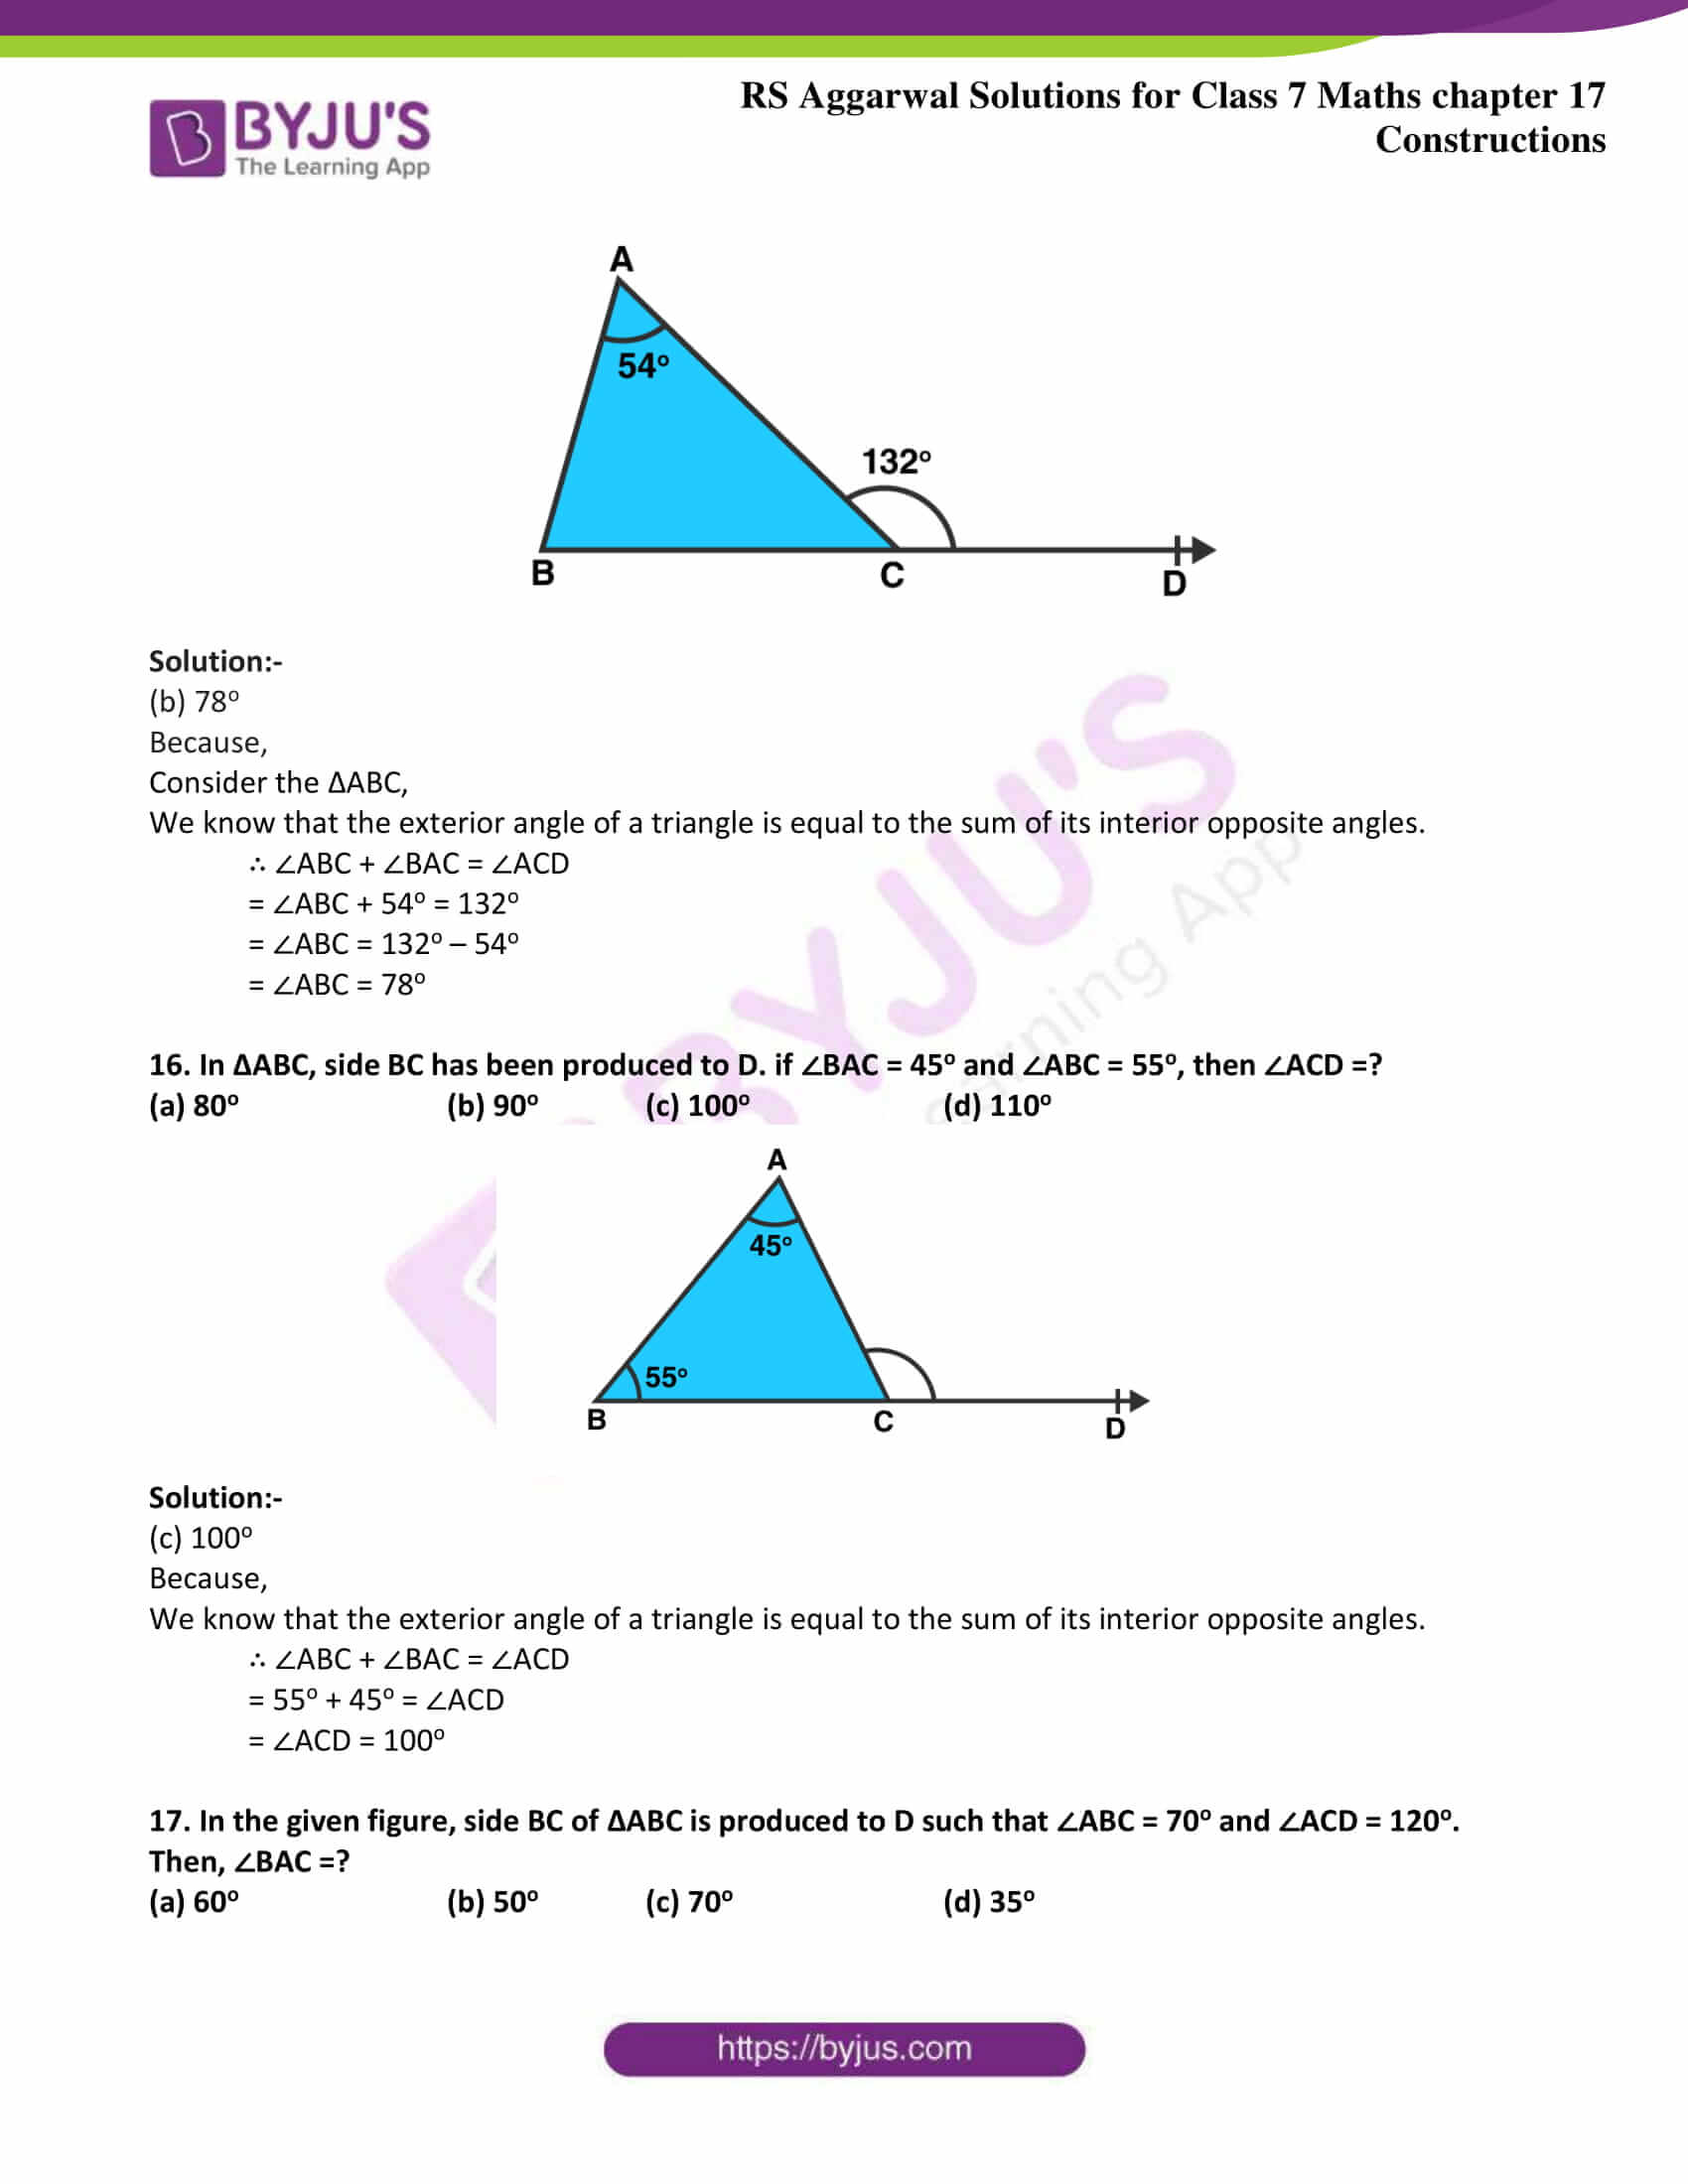 rs aggarwal solution class 7 maths chapter 17